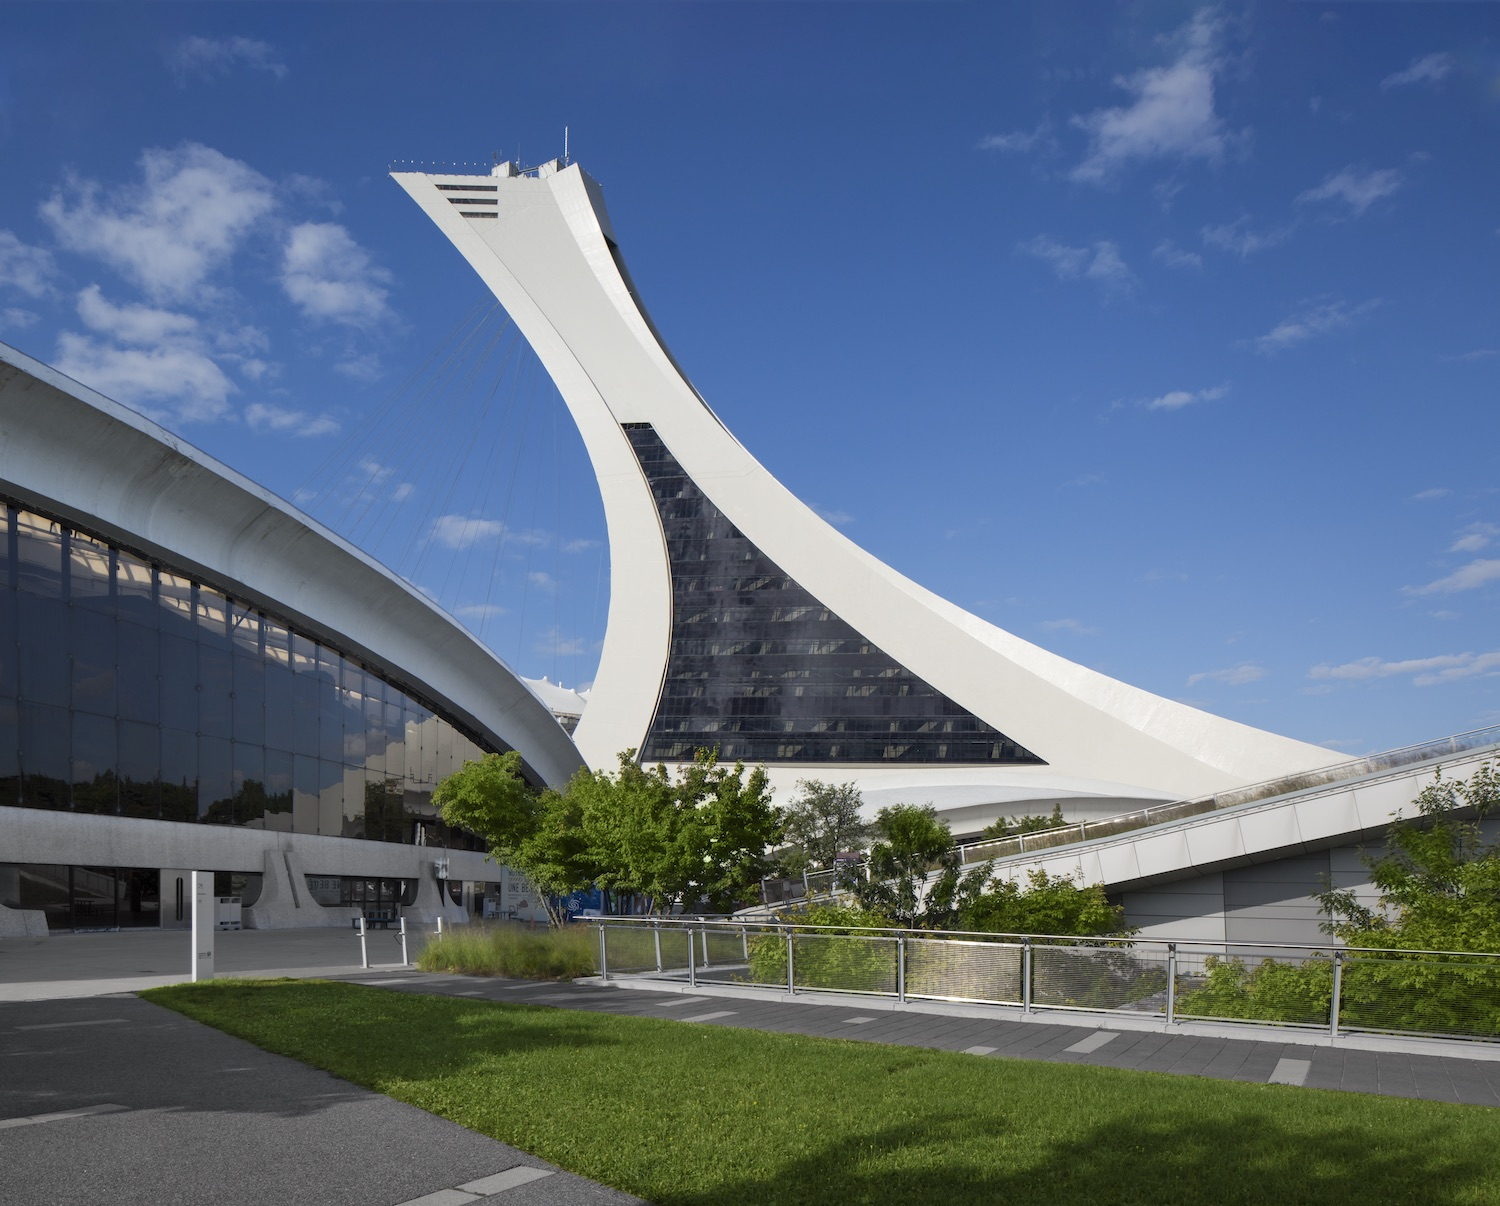 exterior view of the olympic tower in montreal